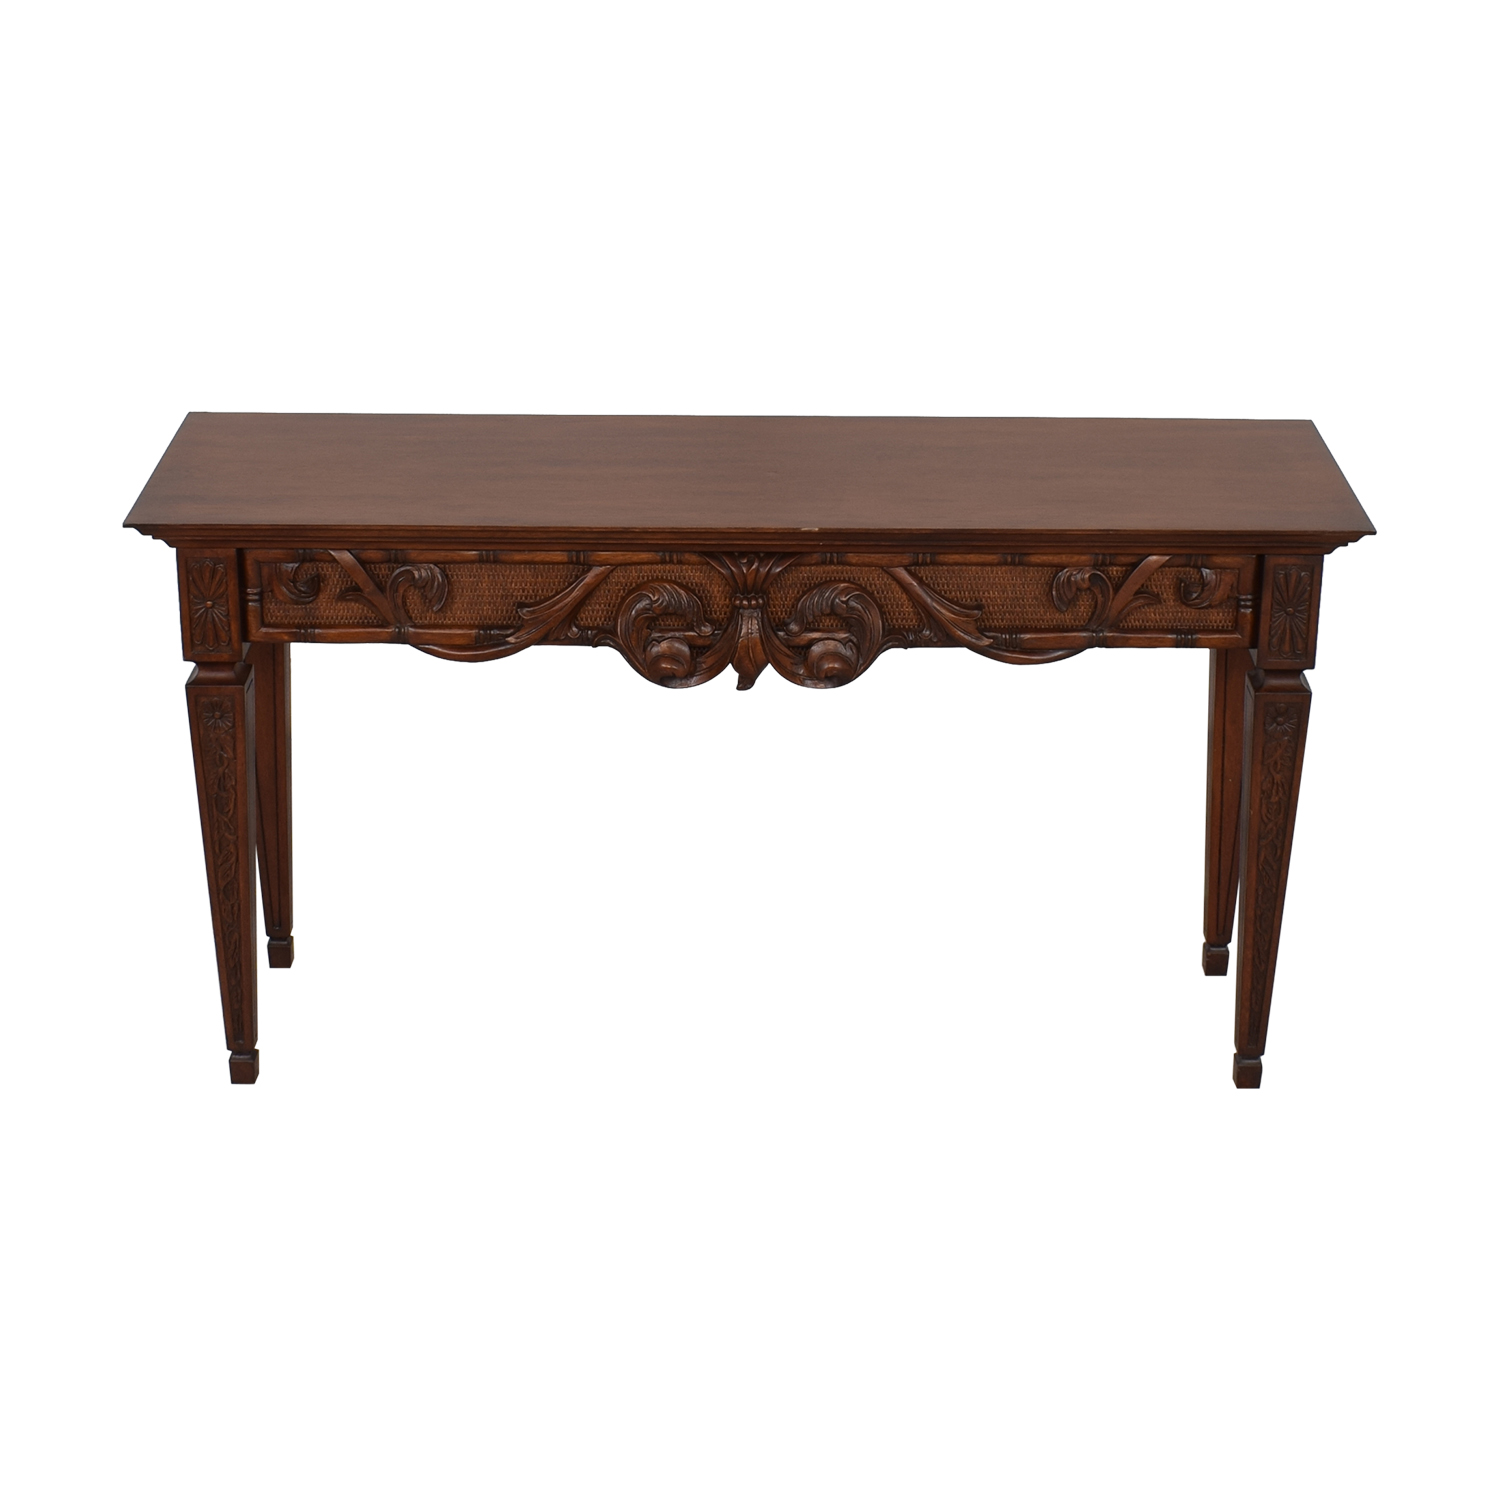 Ethan Allen Ethan Allen Carved Console Table second hand